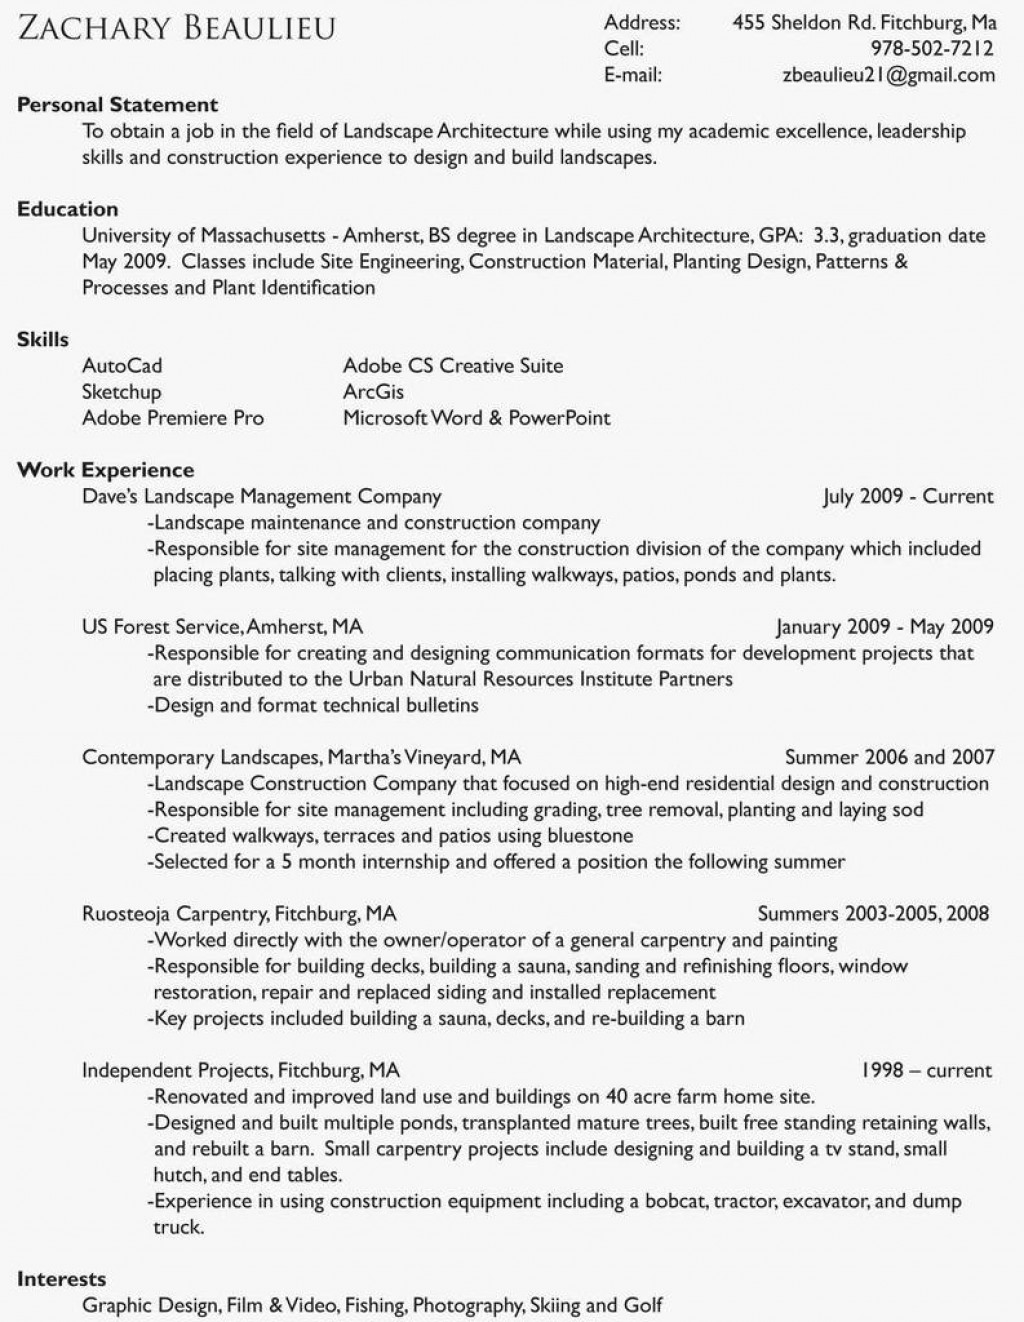 019 Esthetician Resume Skills Inspirational Business Management Essay Topics Writing Service Unethical Of Research Singular Paper Pdf For Techniques Large